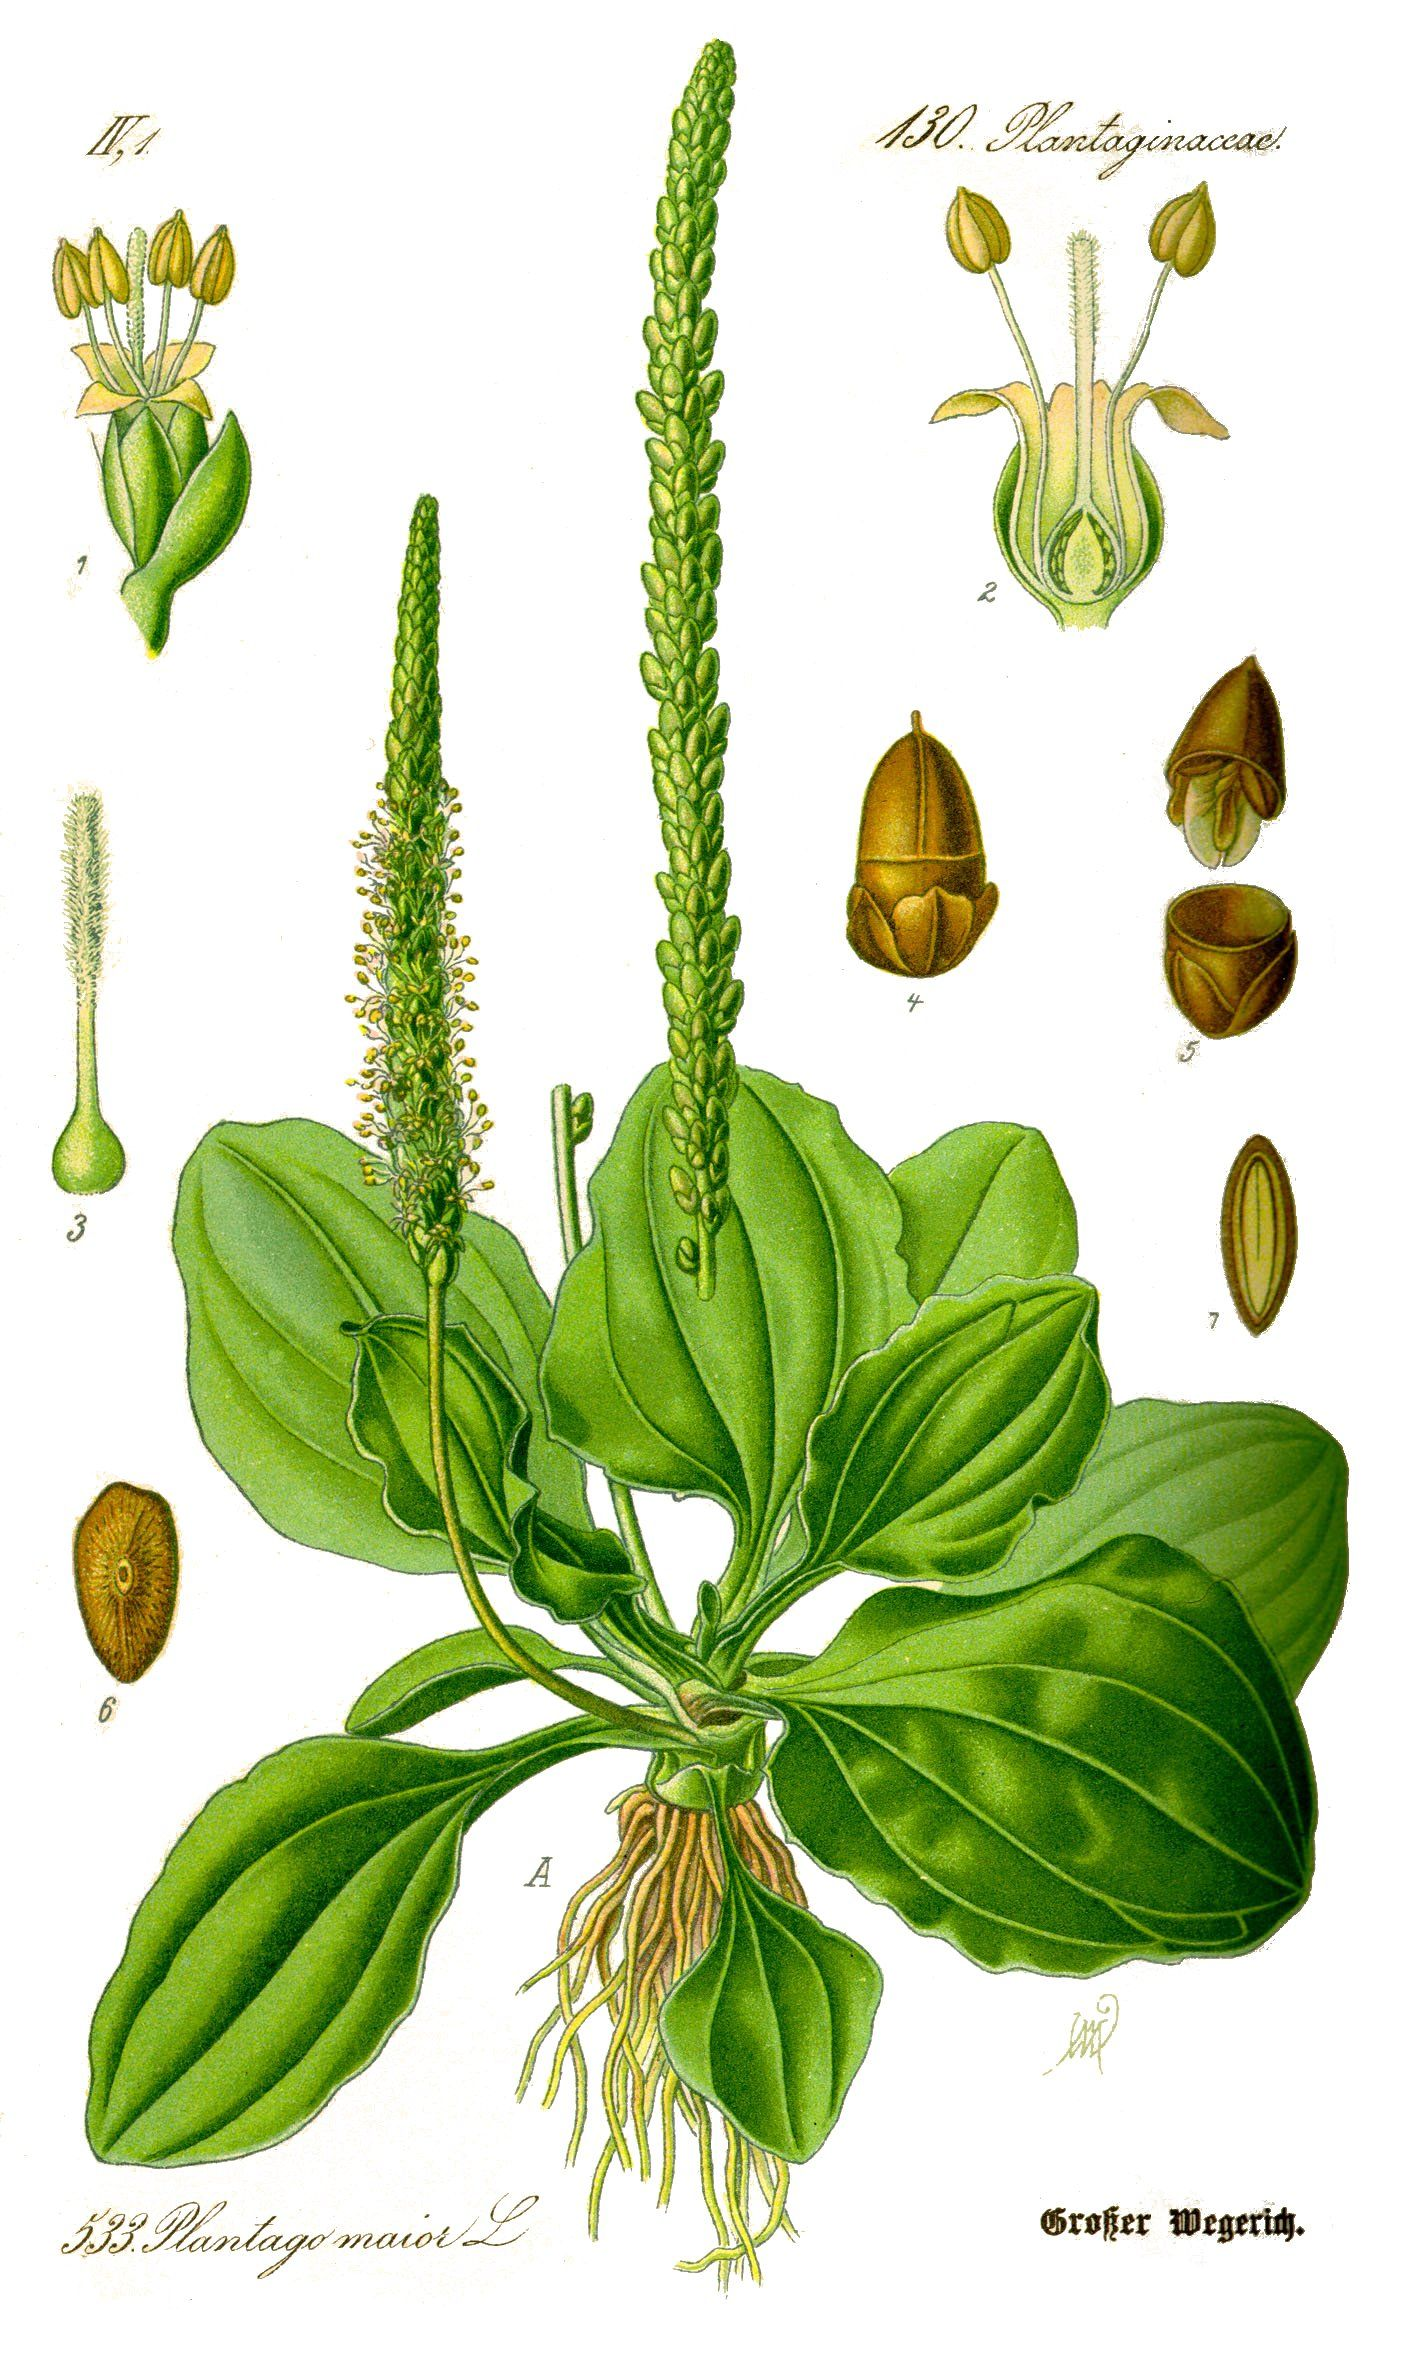 Illustration_Plantago_major0_clean.jpg (1407×2367)